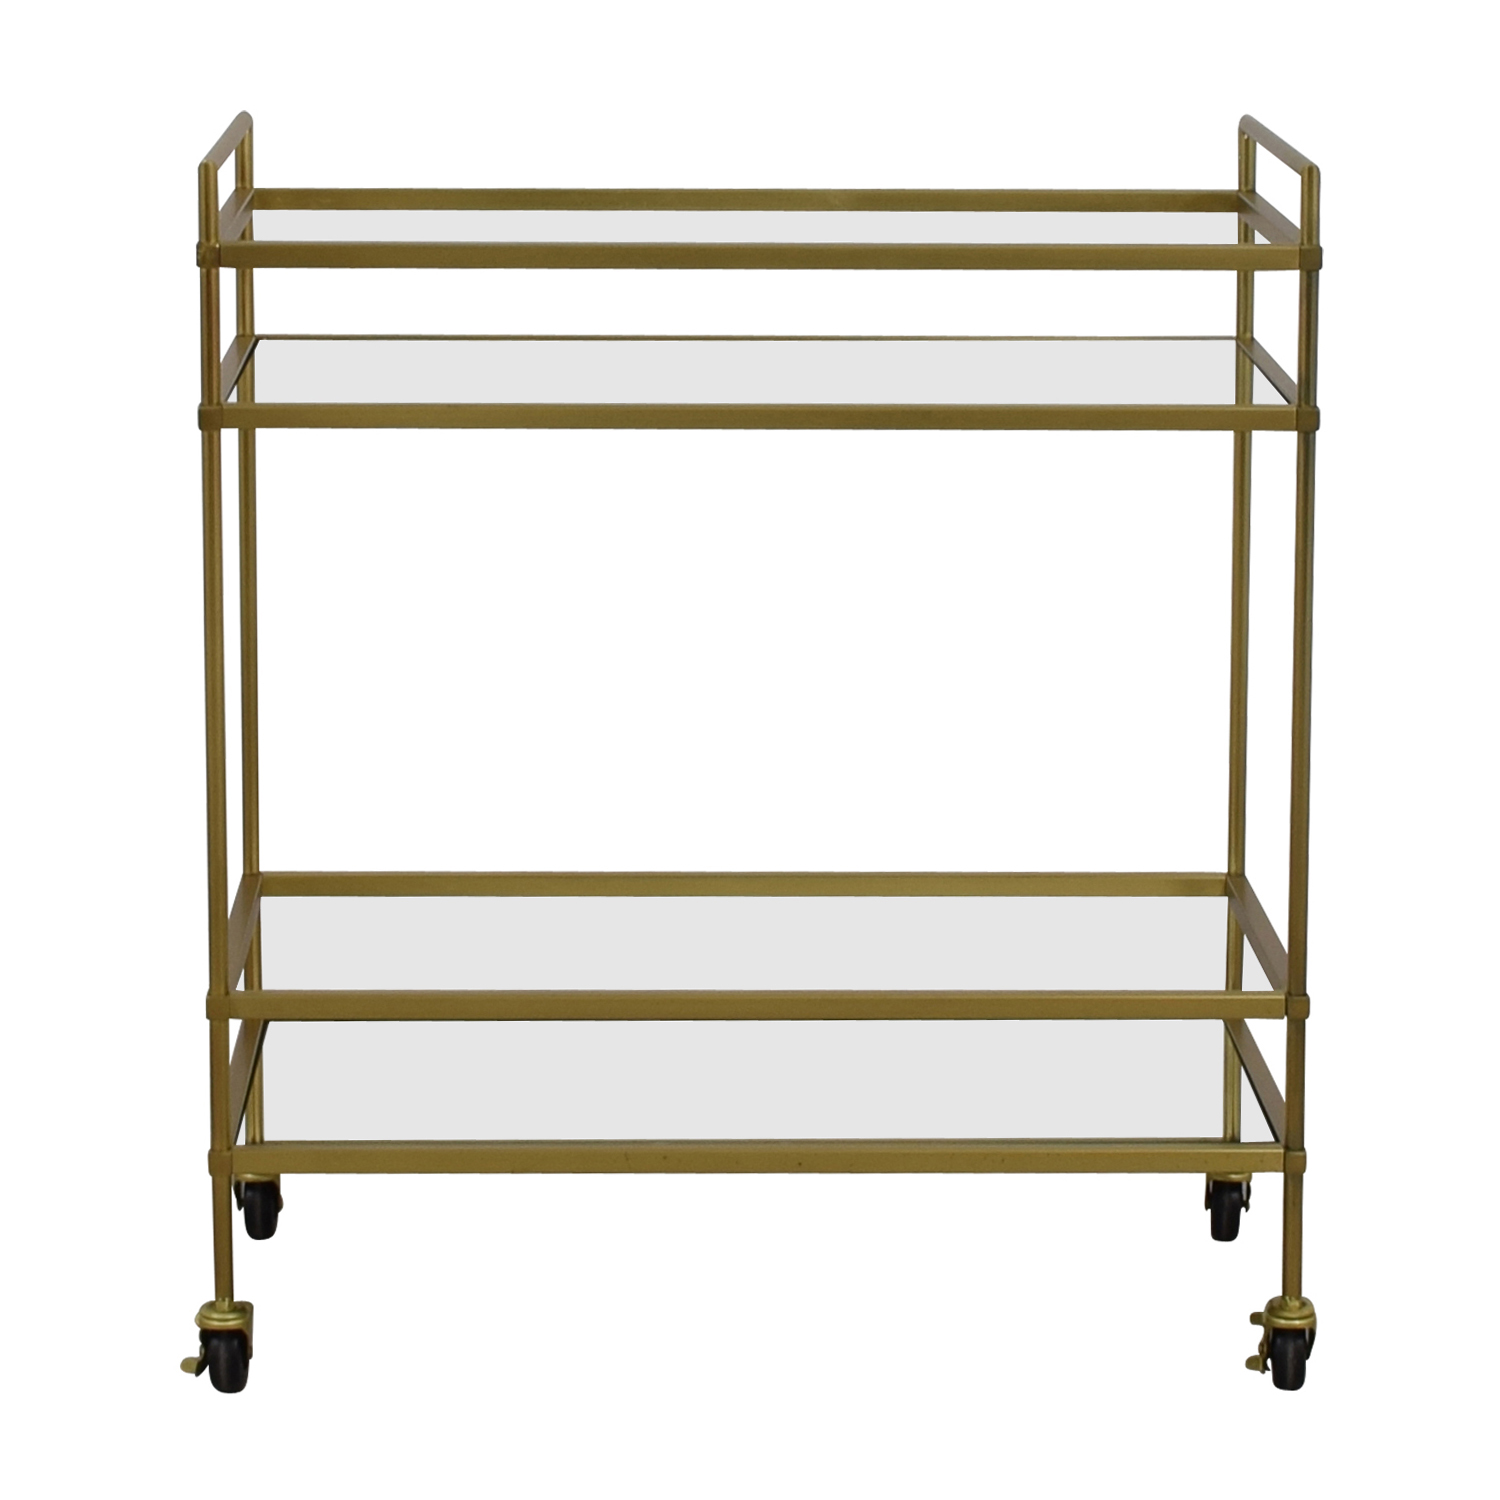 West Elm West Elm Gold Mirrored Bar Cart used